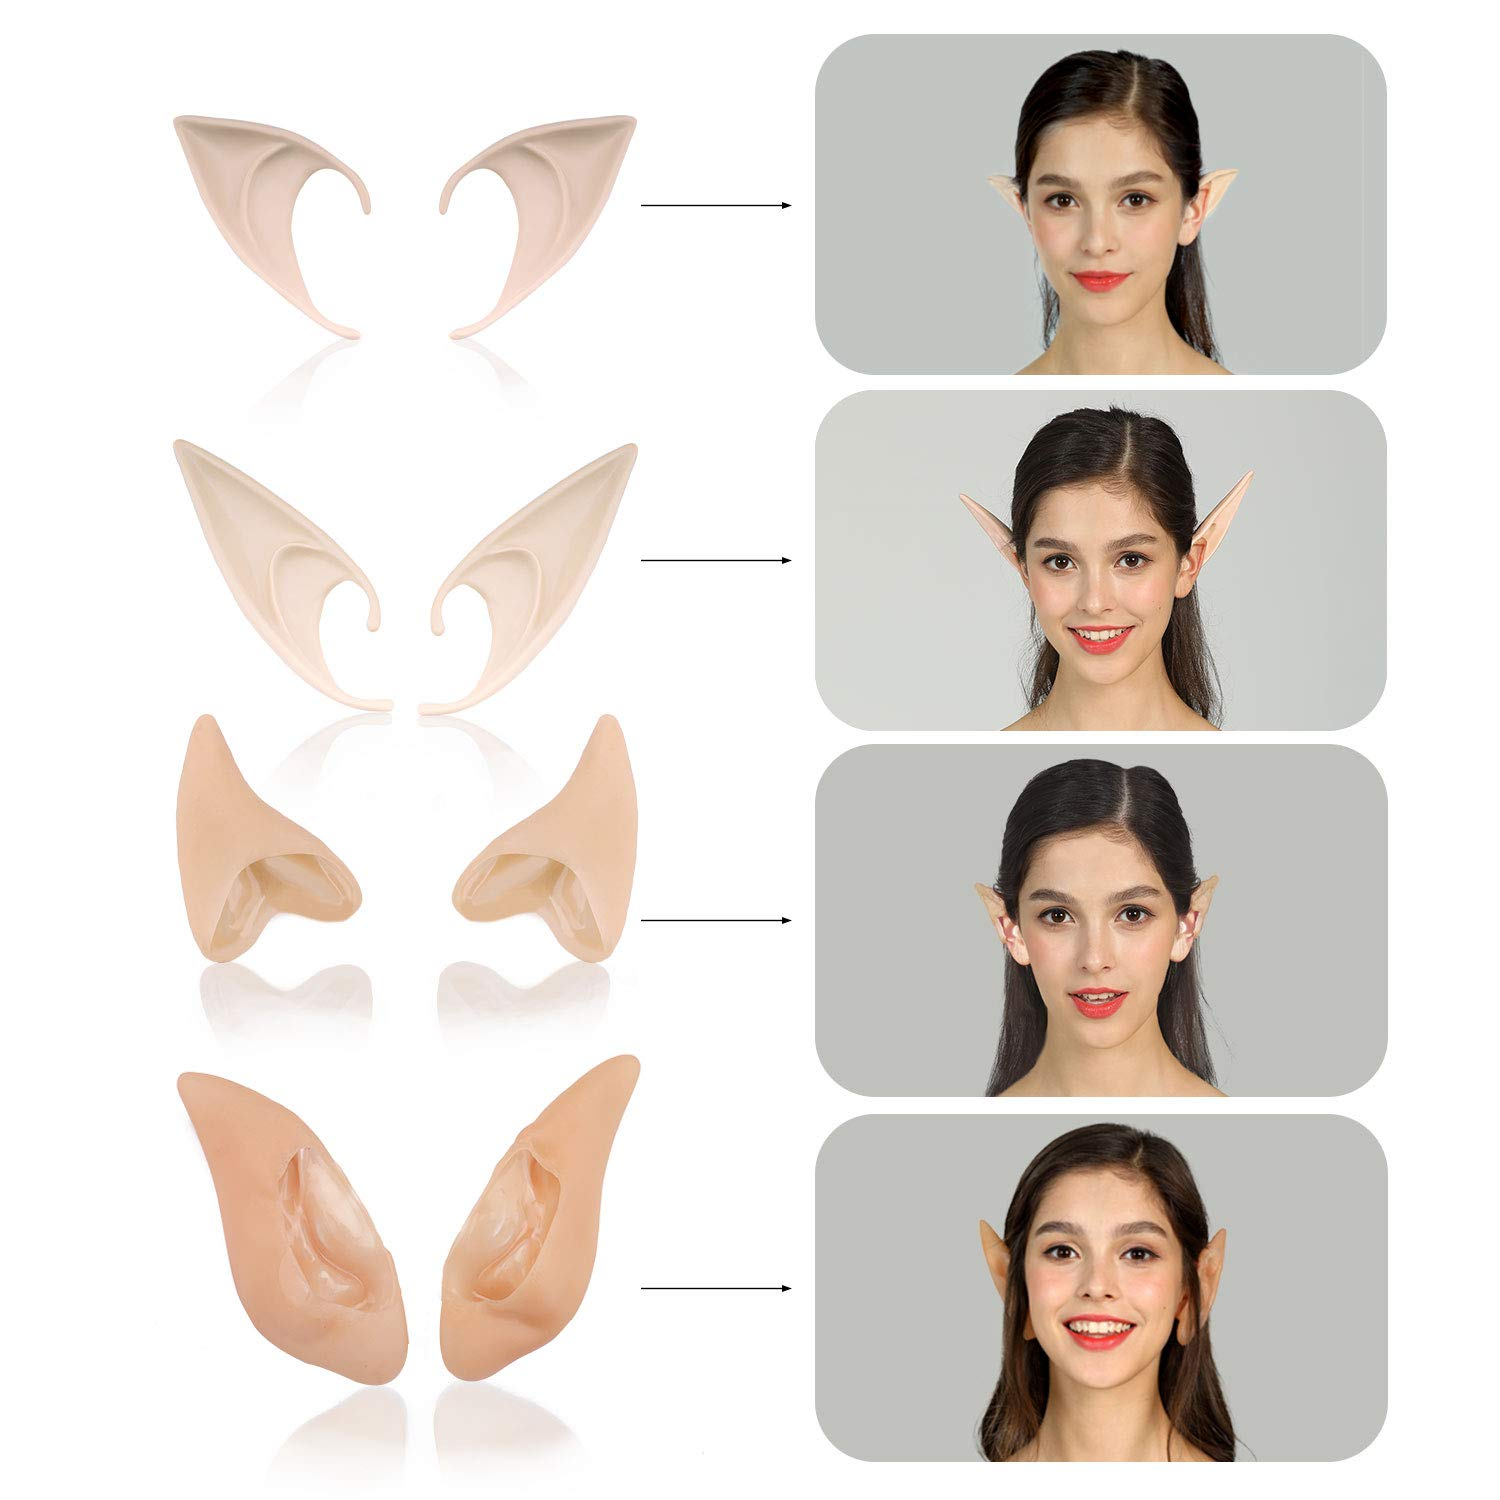 Jeicy Cosplay Fairy Pixie Elf Ears Anime Halloween Elven Ears Goblin Party Dress Up Costumes Accessories 4 Pair(Style 1) by Jeicy